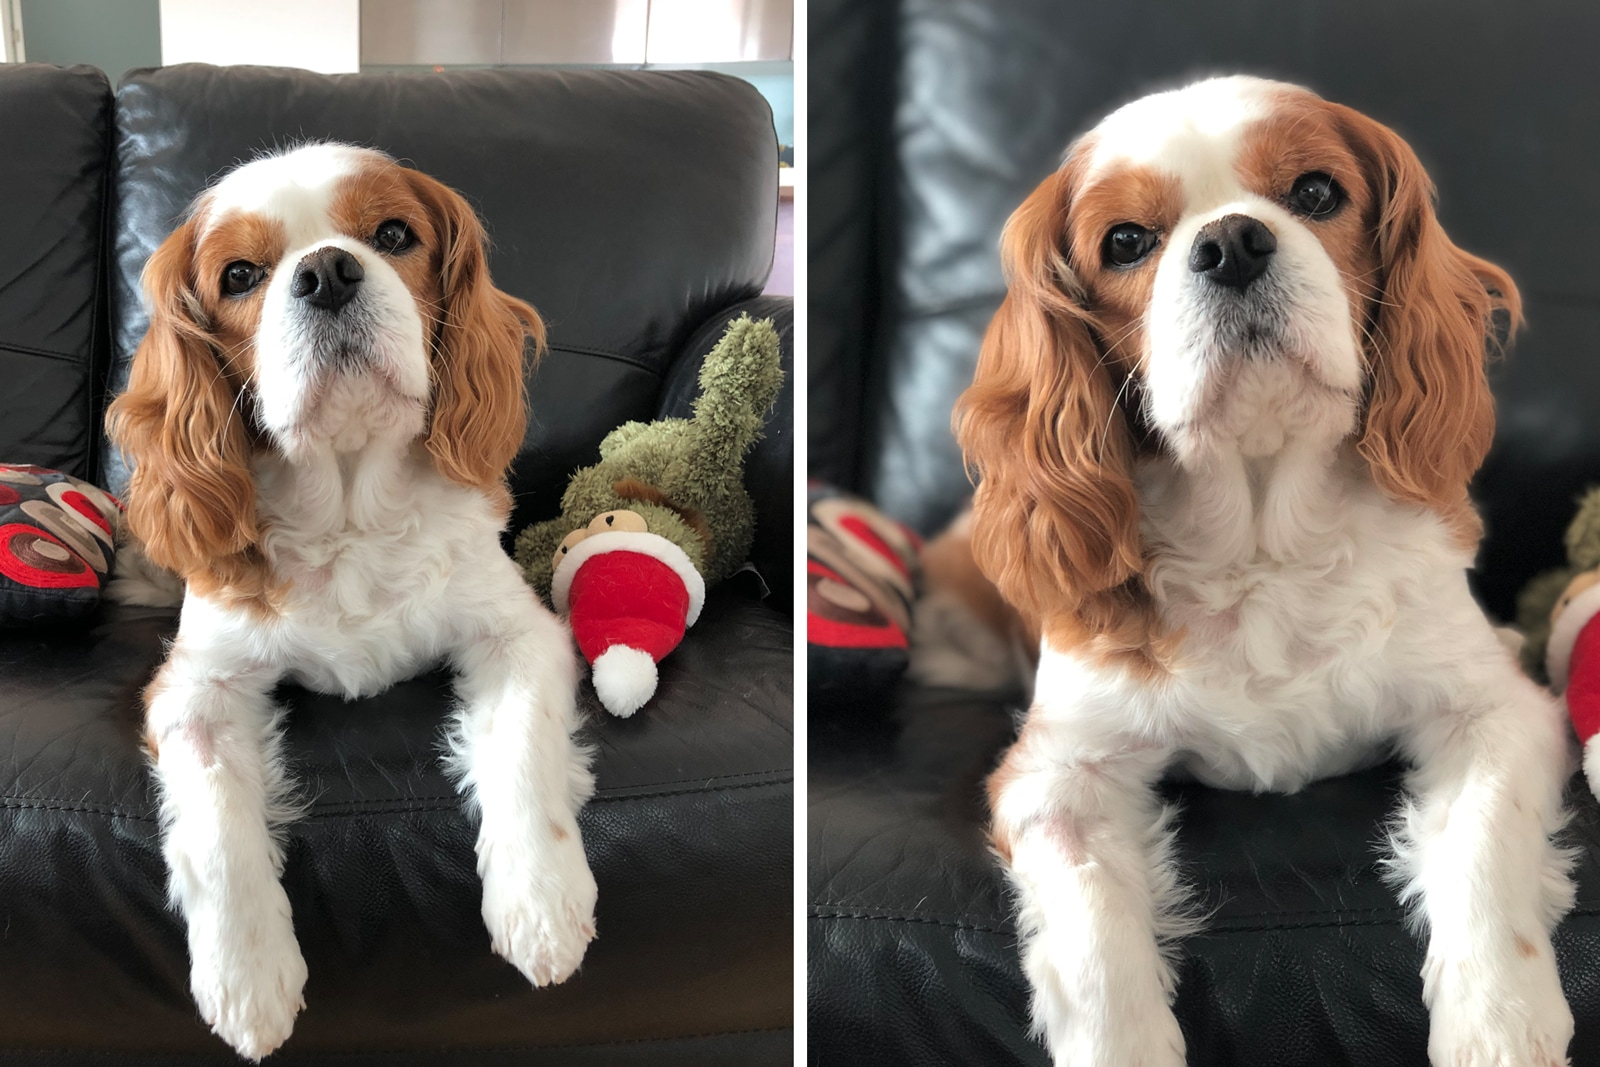 comparative image of two dog photos